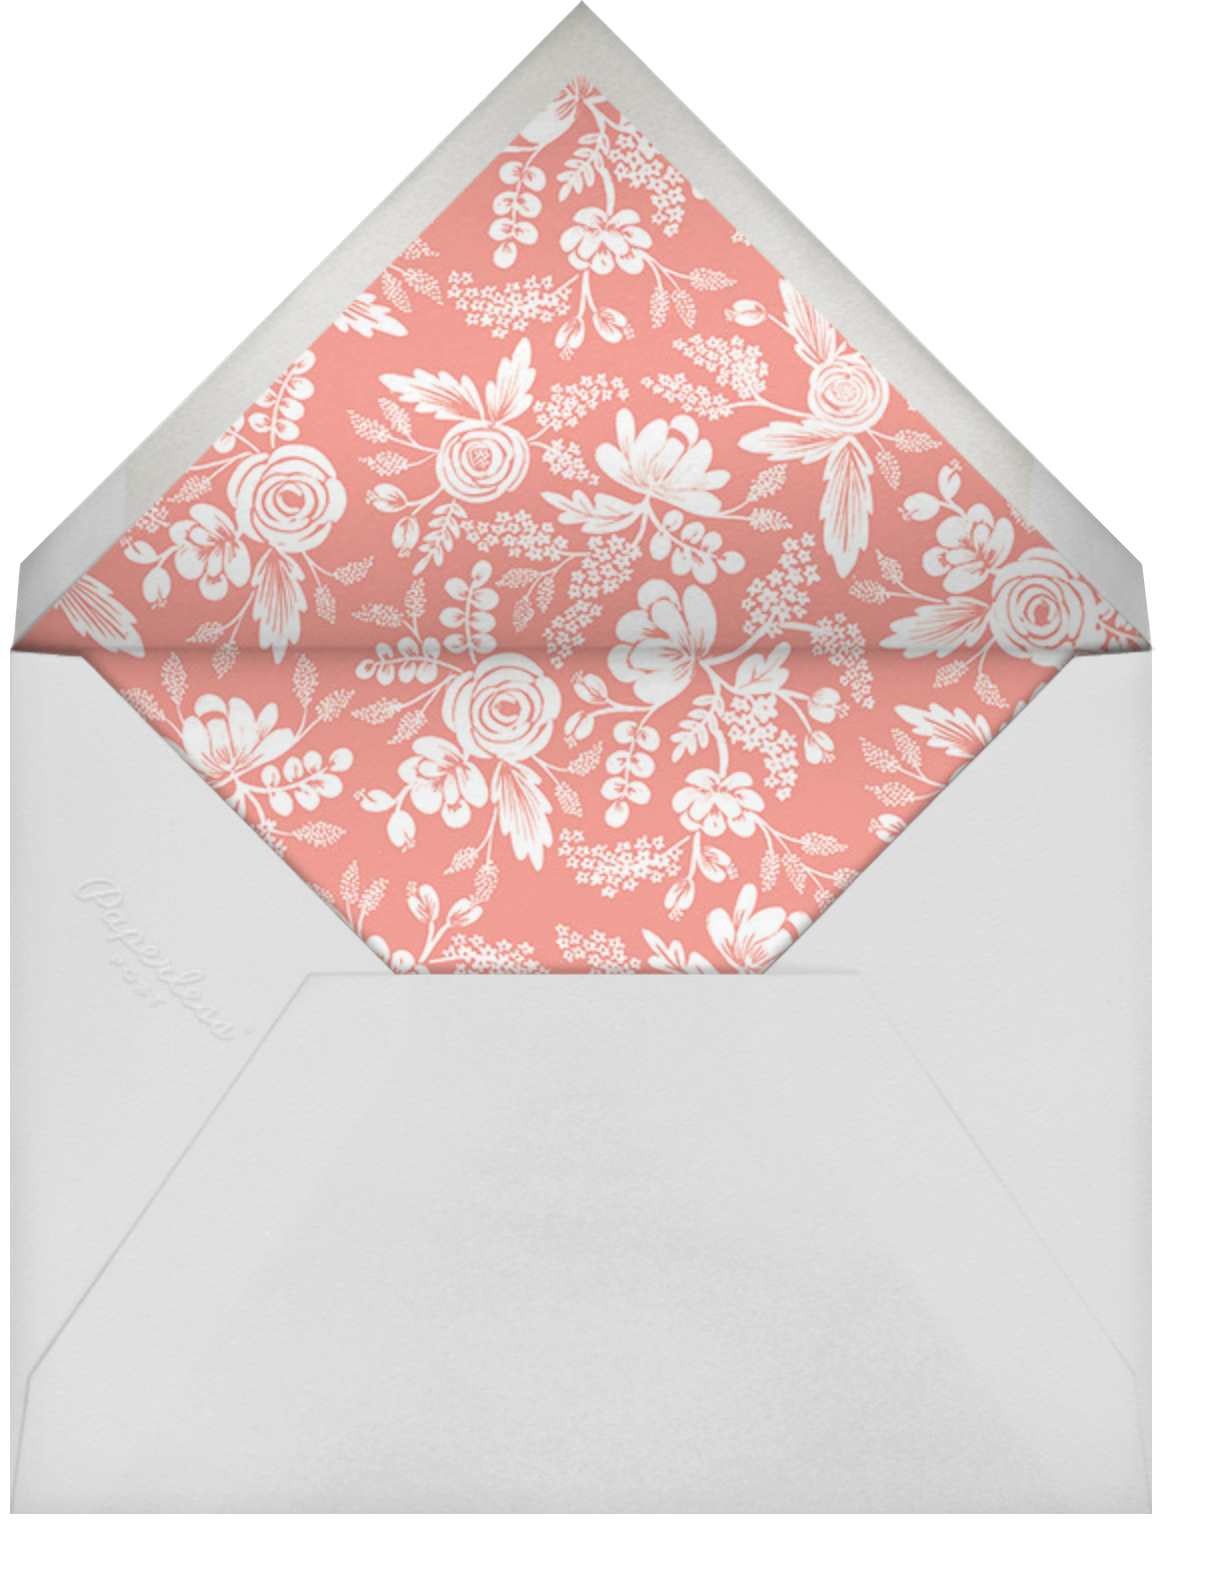 Heather and Lace (Photo Stationery) - Gold/Pink - Rifle Paper Co. - Kids' stationery - envelope back